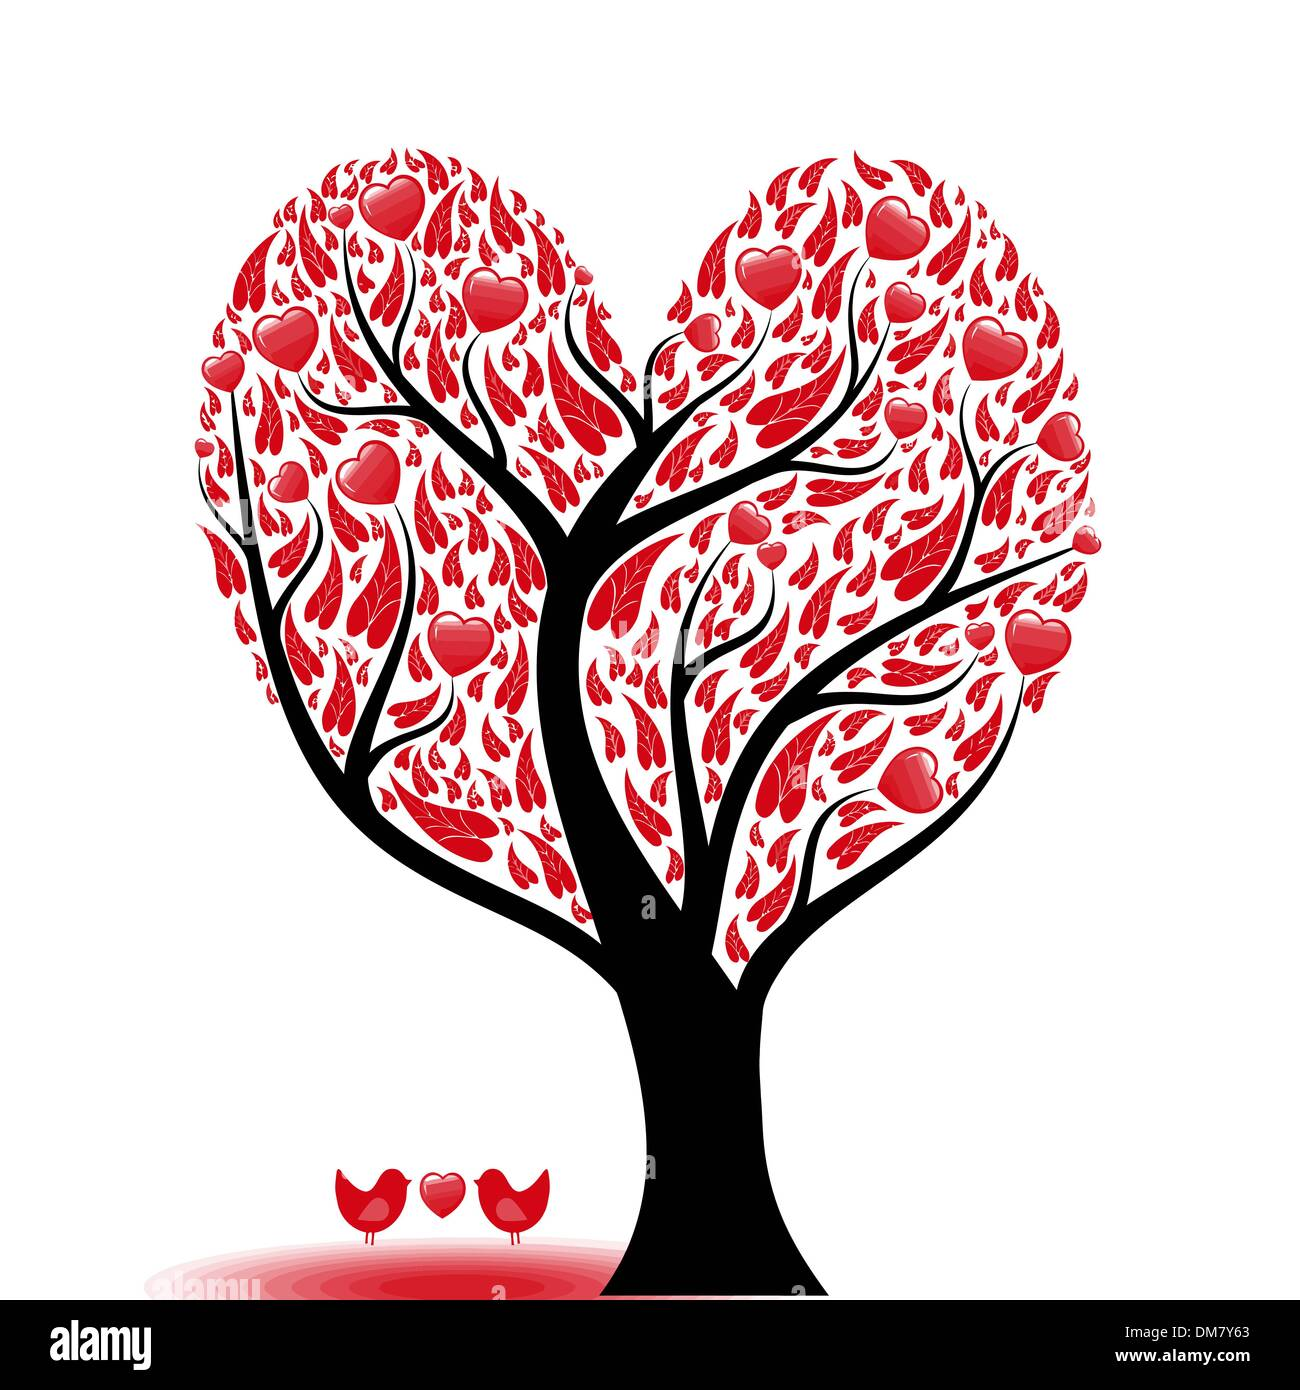 Love tree - Stock Image